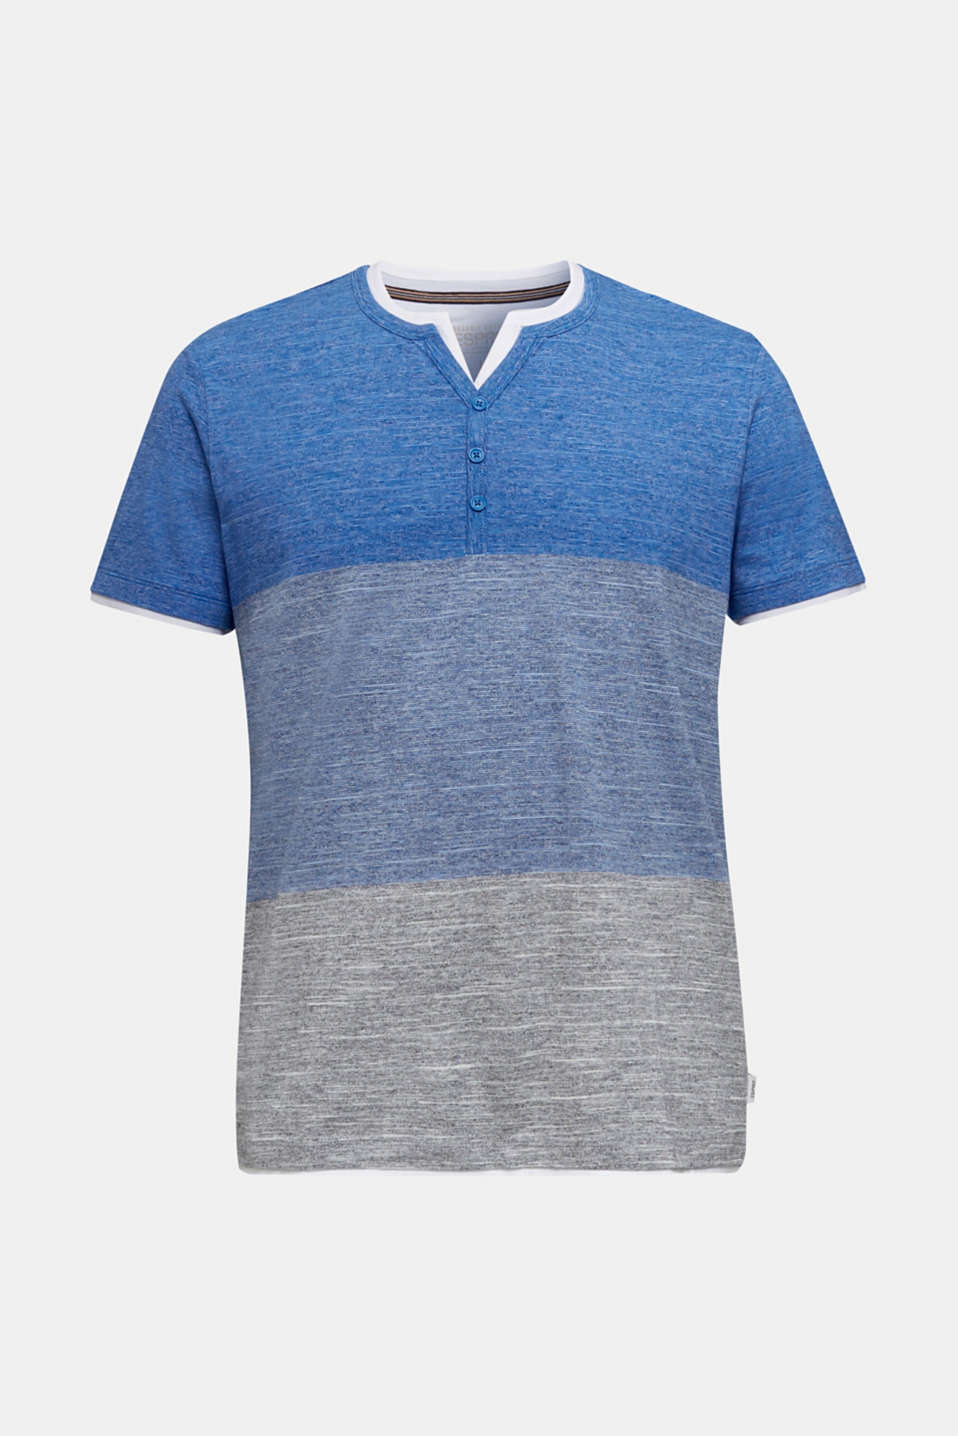 Henley top in jersey with layered details, BLUE 5, detail image number 6